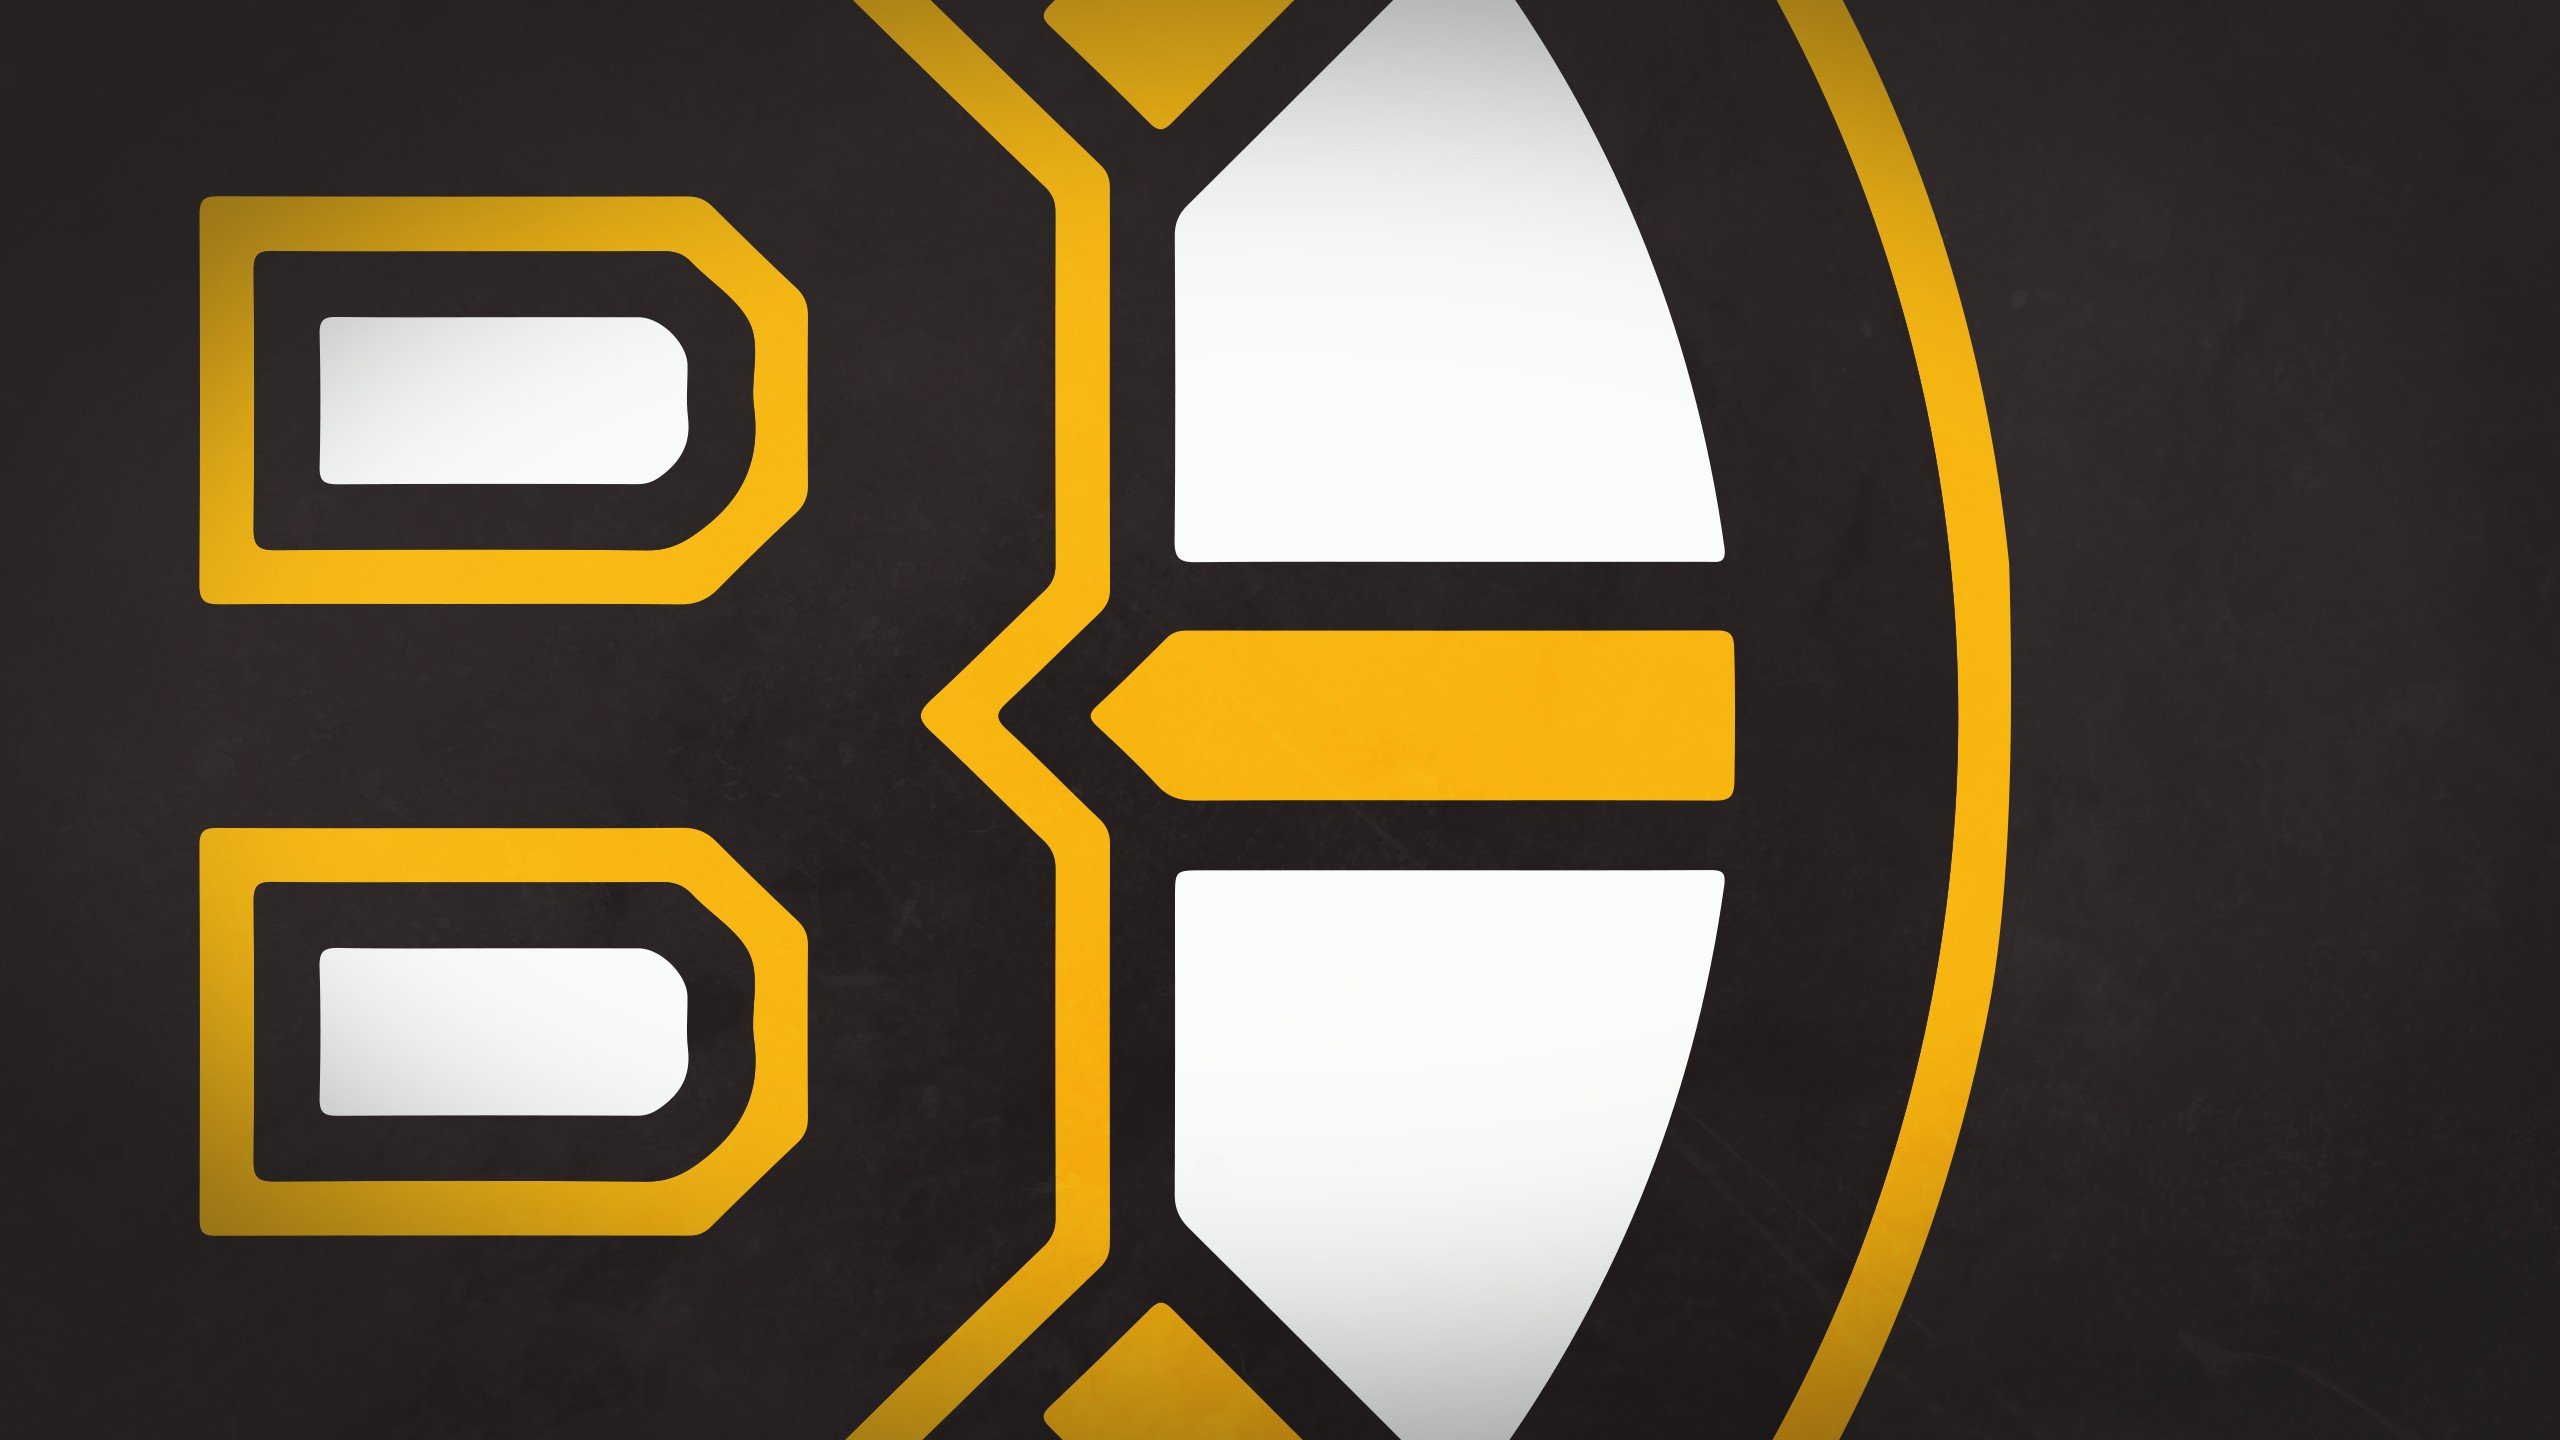 Boston Bruins Wallpaper 2560x1440 Sports Boston Bruins